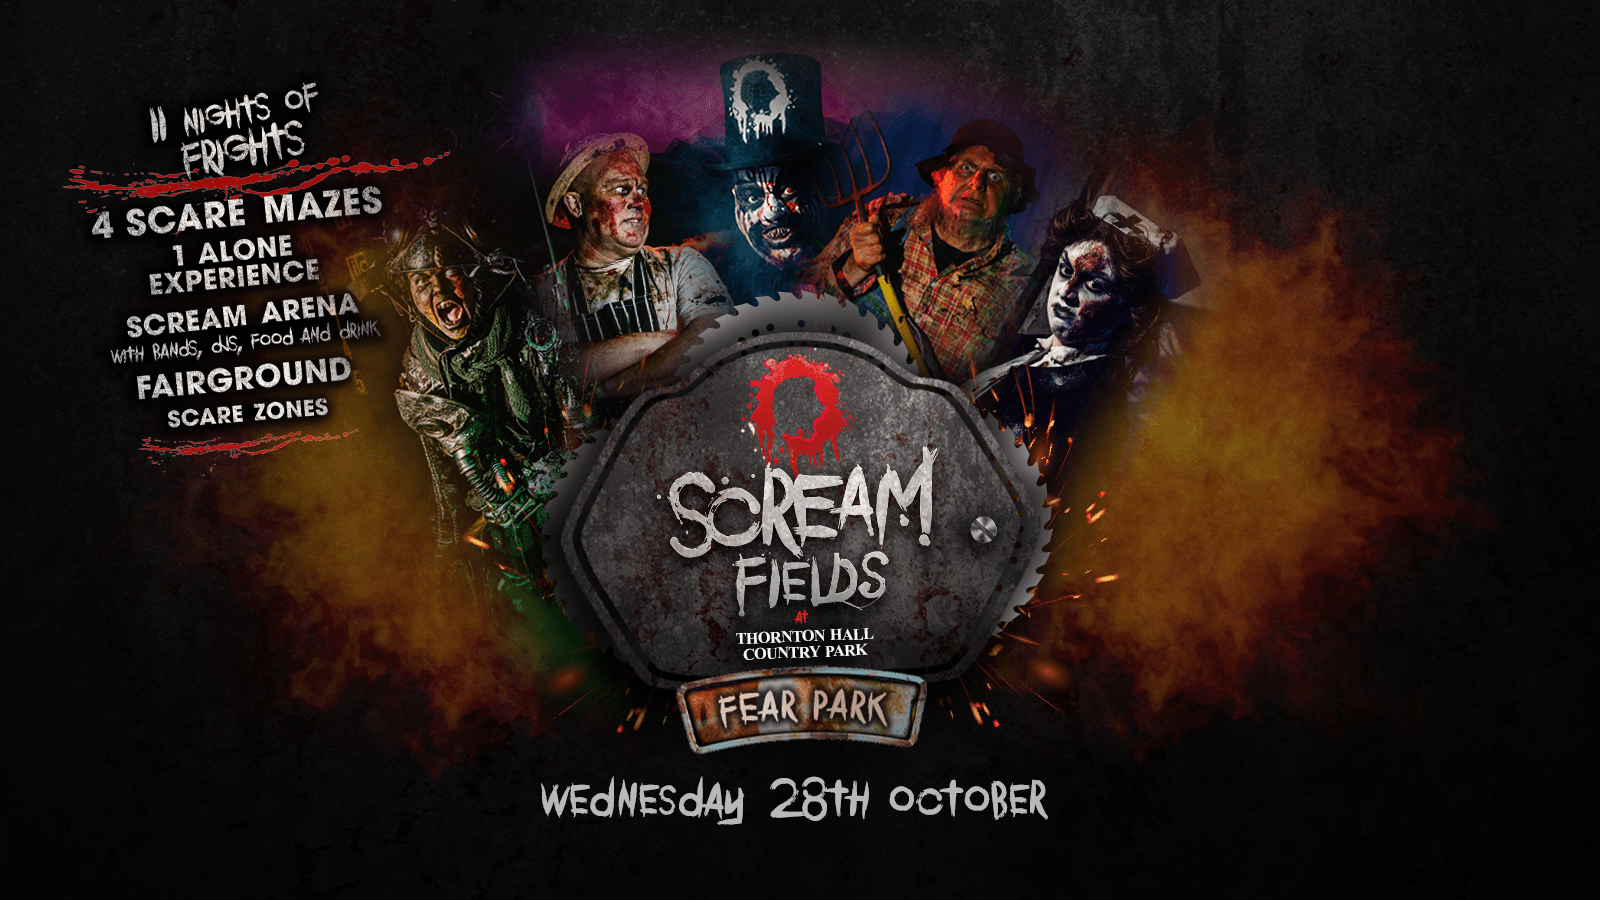 6.45PM – Screamfields: Wednesday 28th October 2020